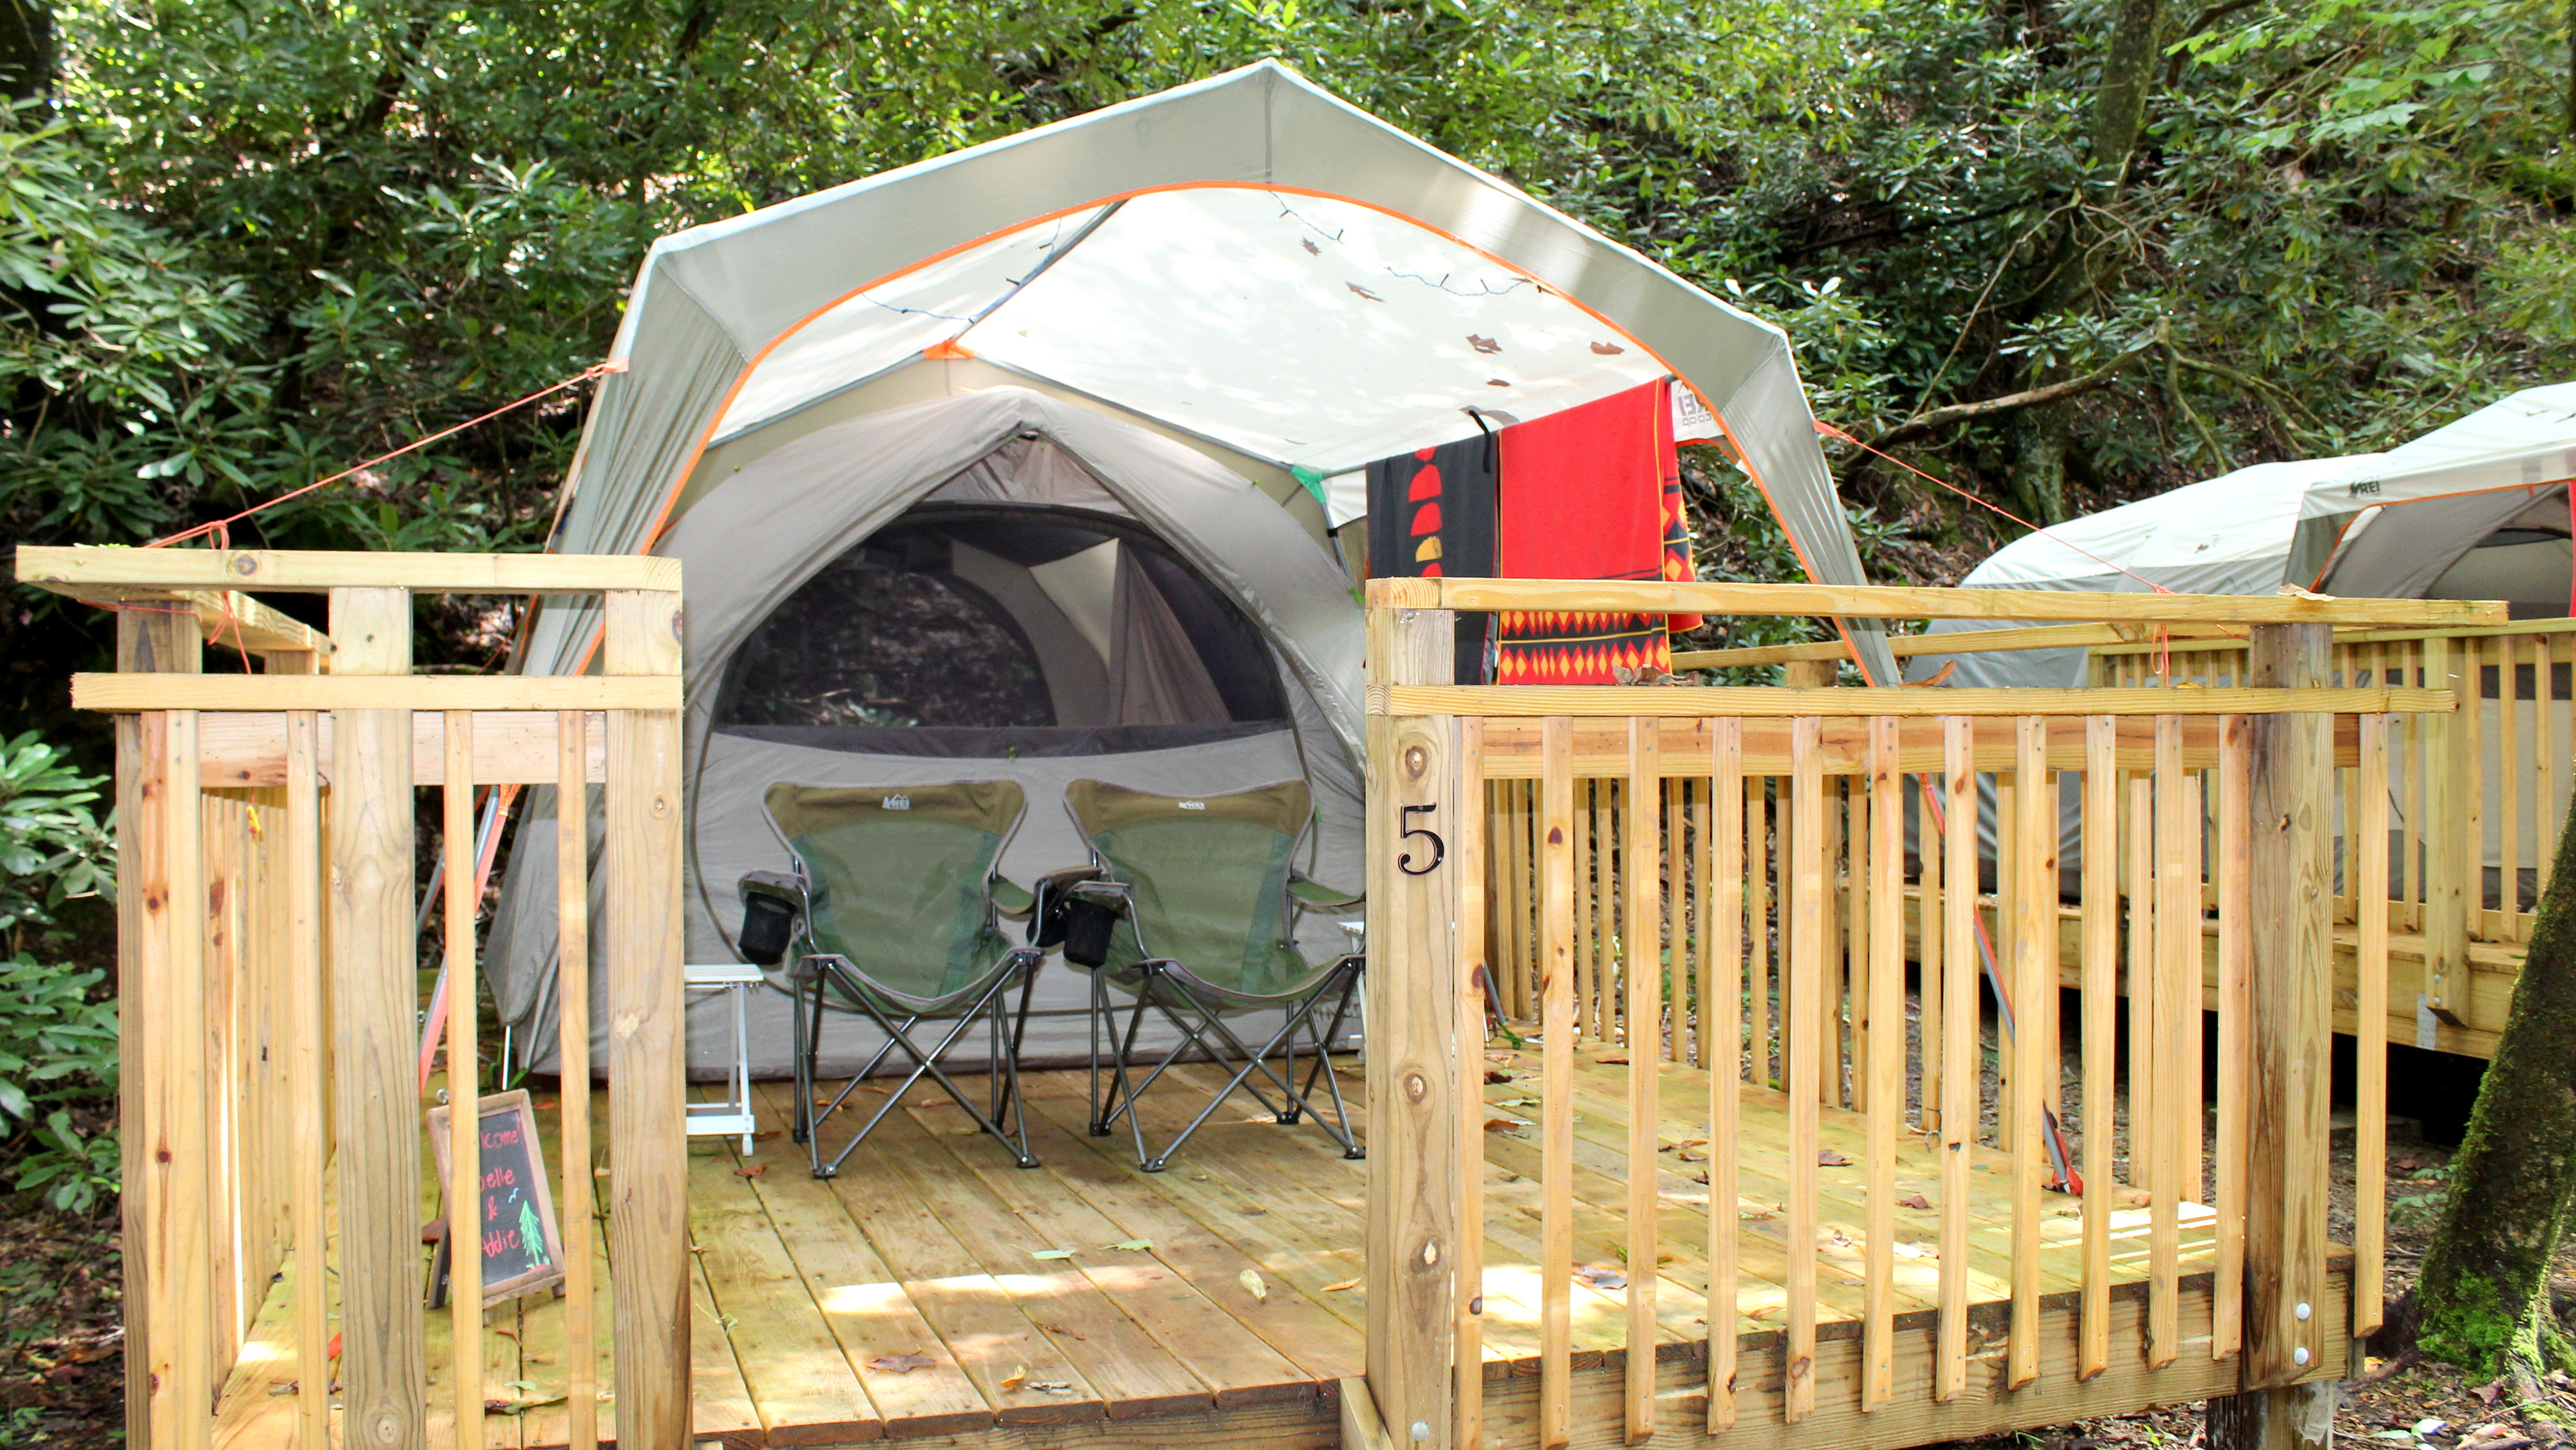 Pitch a tent in the wilderness with A Walk in the Woods' Camp Atagahi.